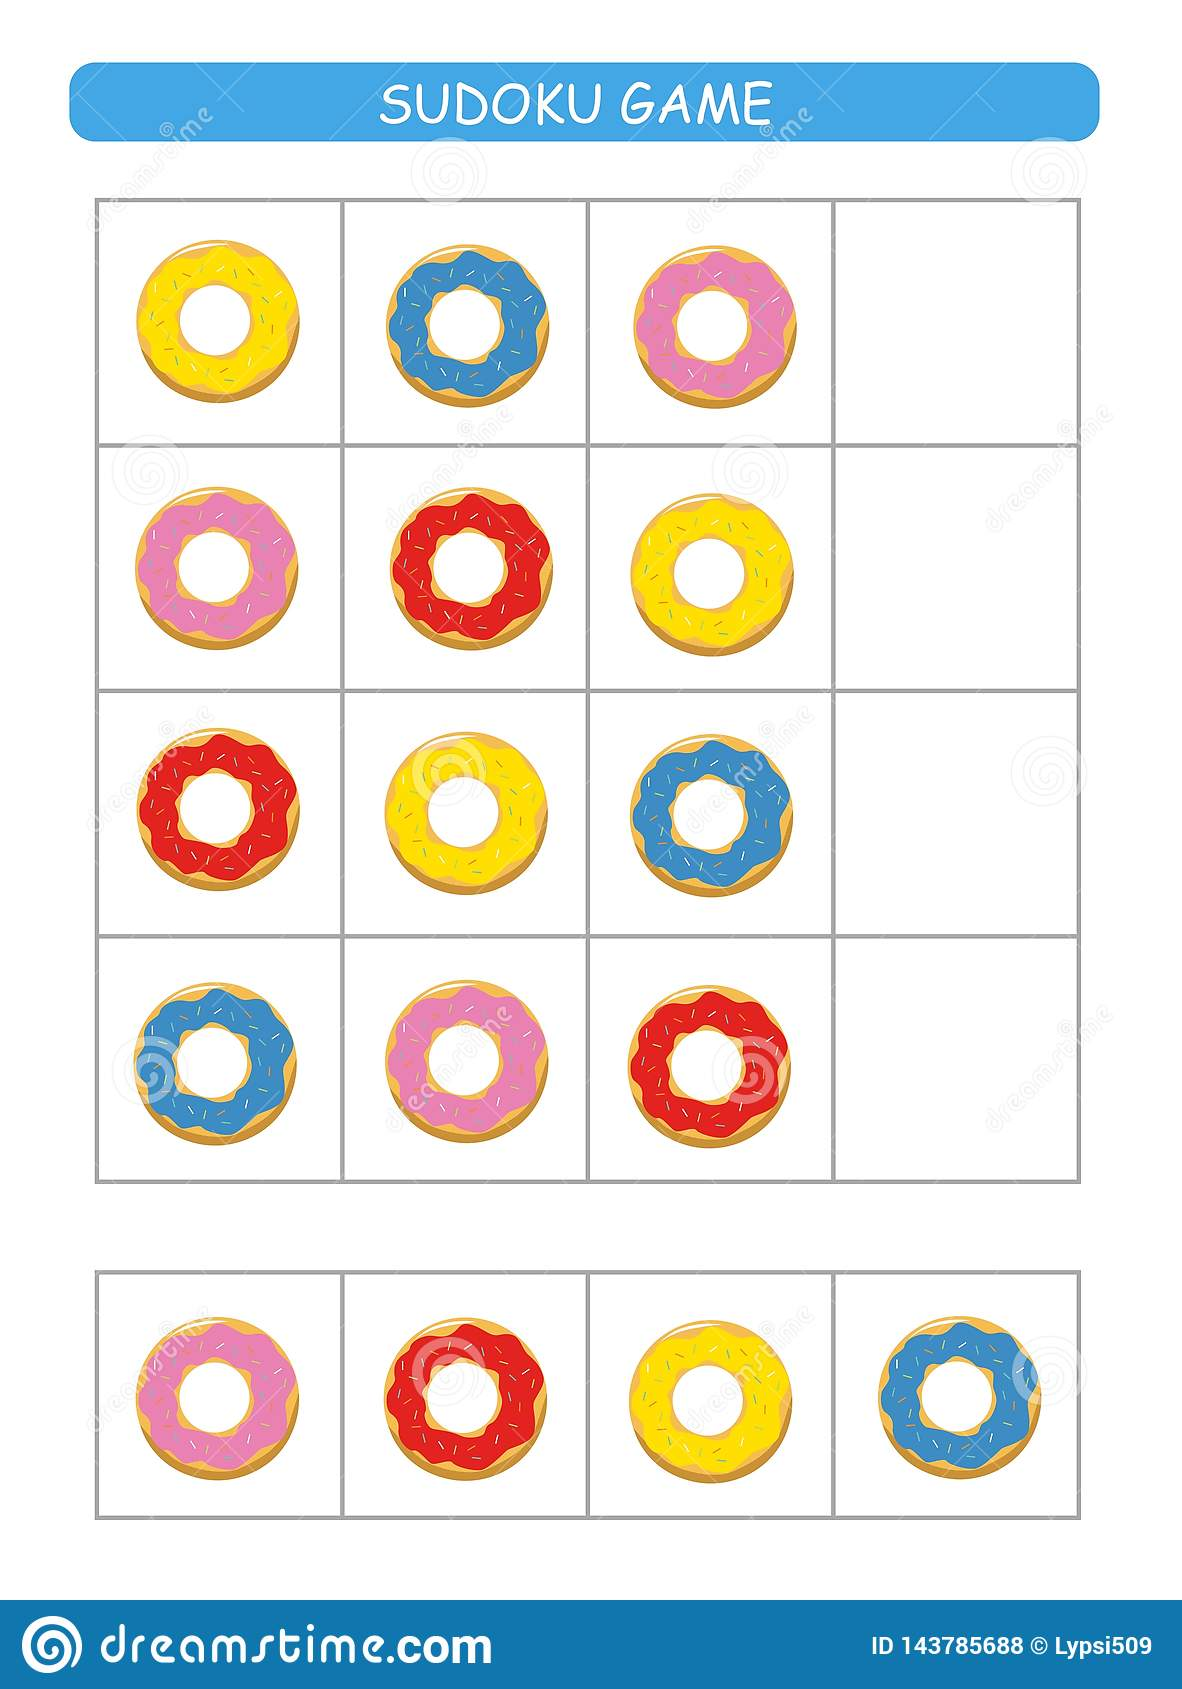 Sudoku for kids. Kids activity sheet. Training logic, educational game. Sudoku game with colorful donuts.